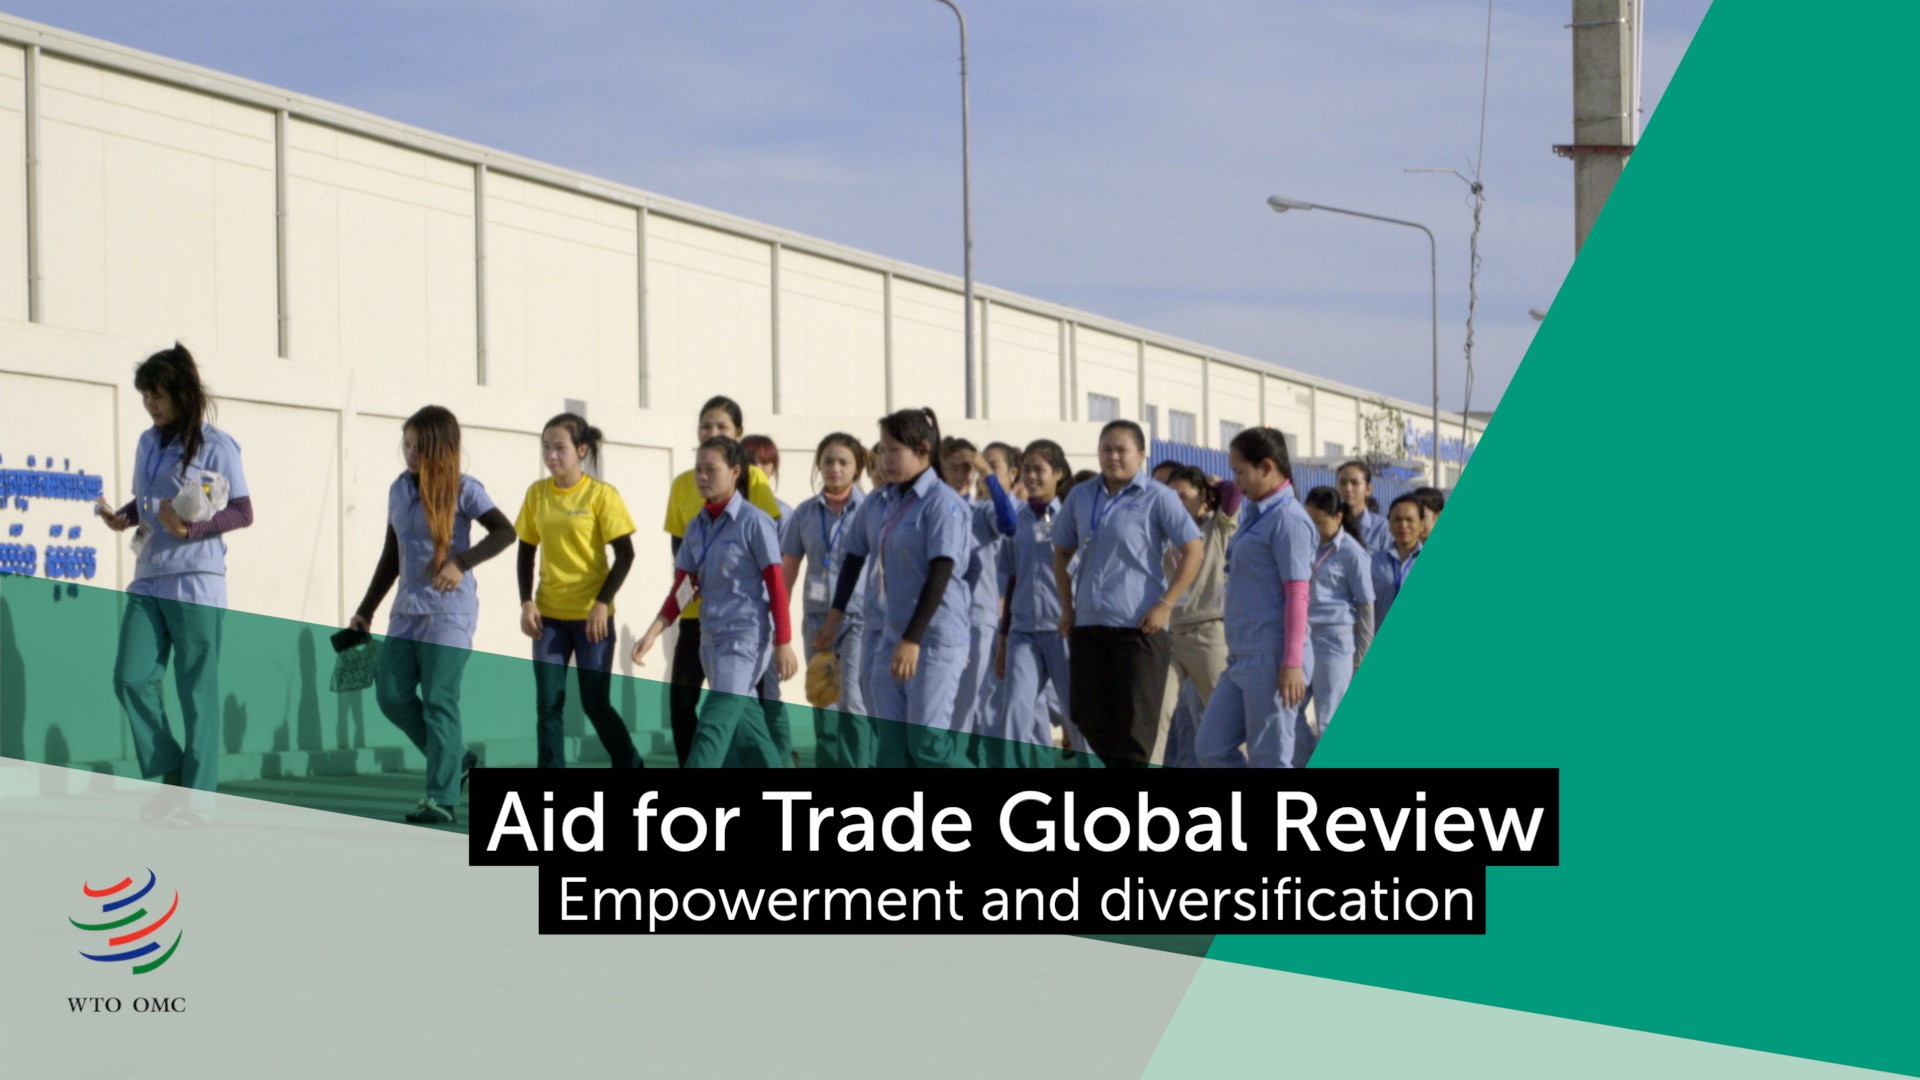 World Trade Organization - Home page - Global trade